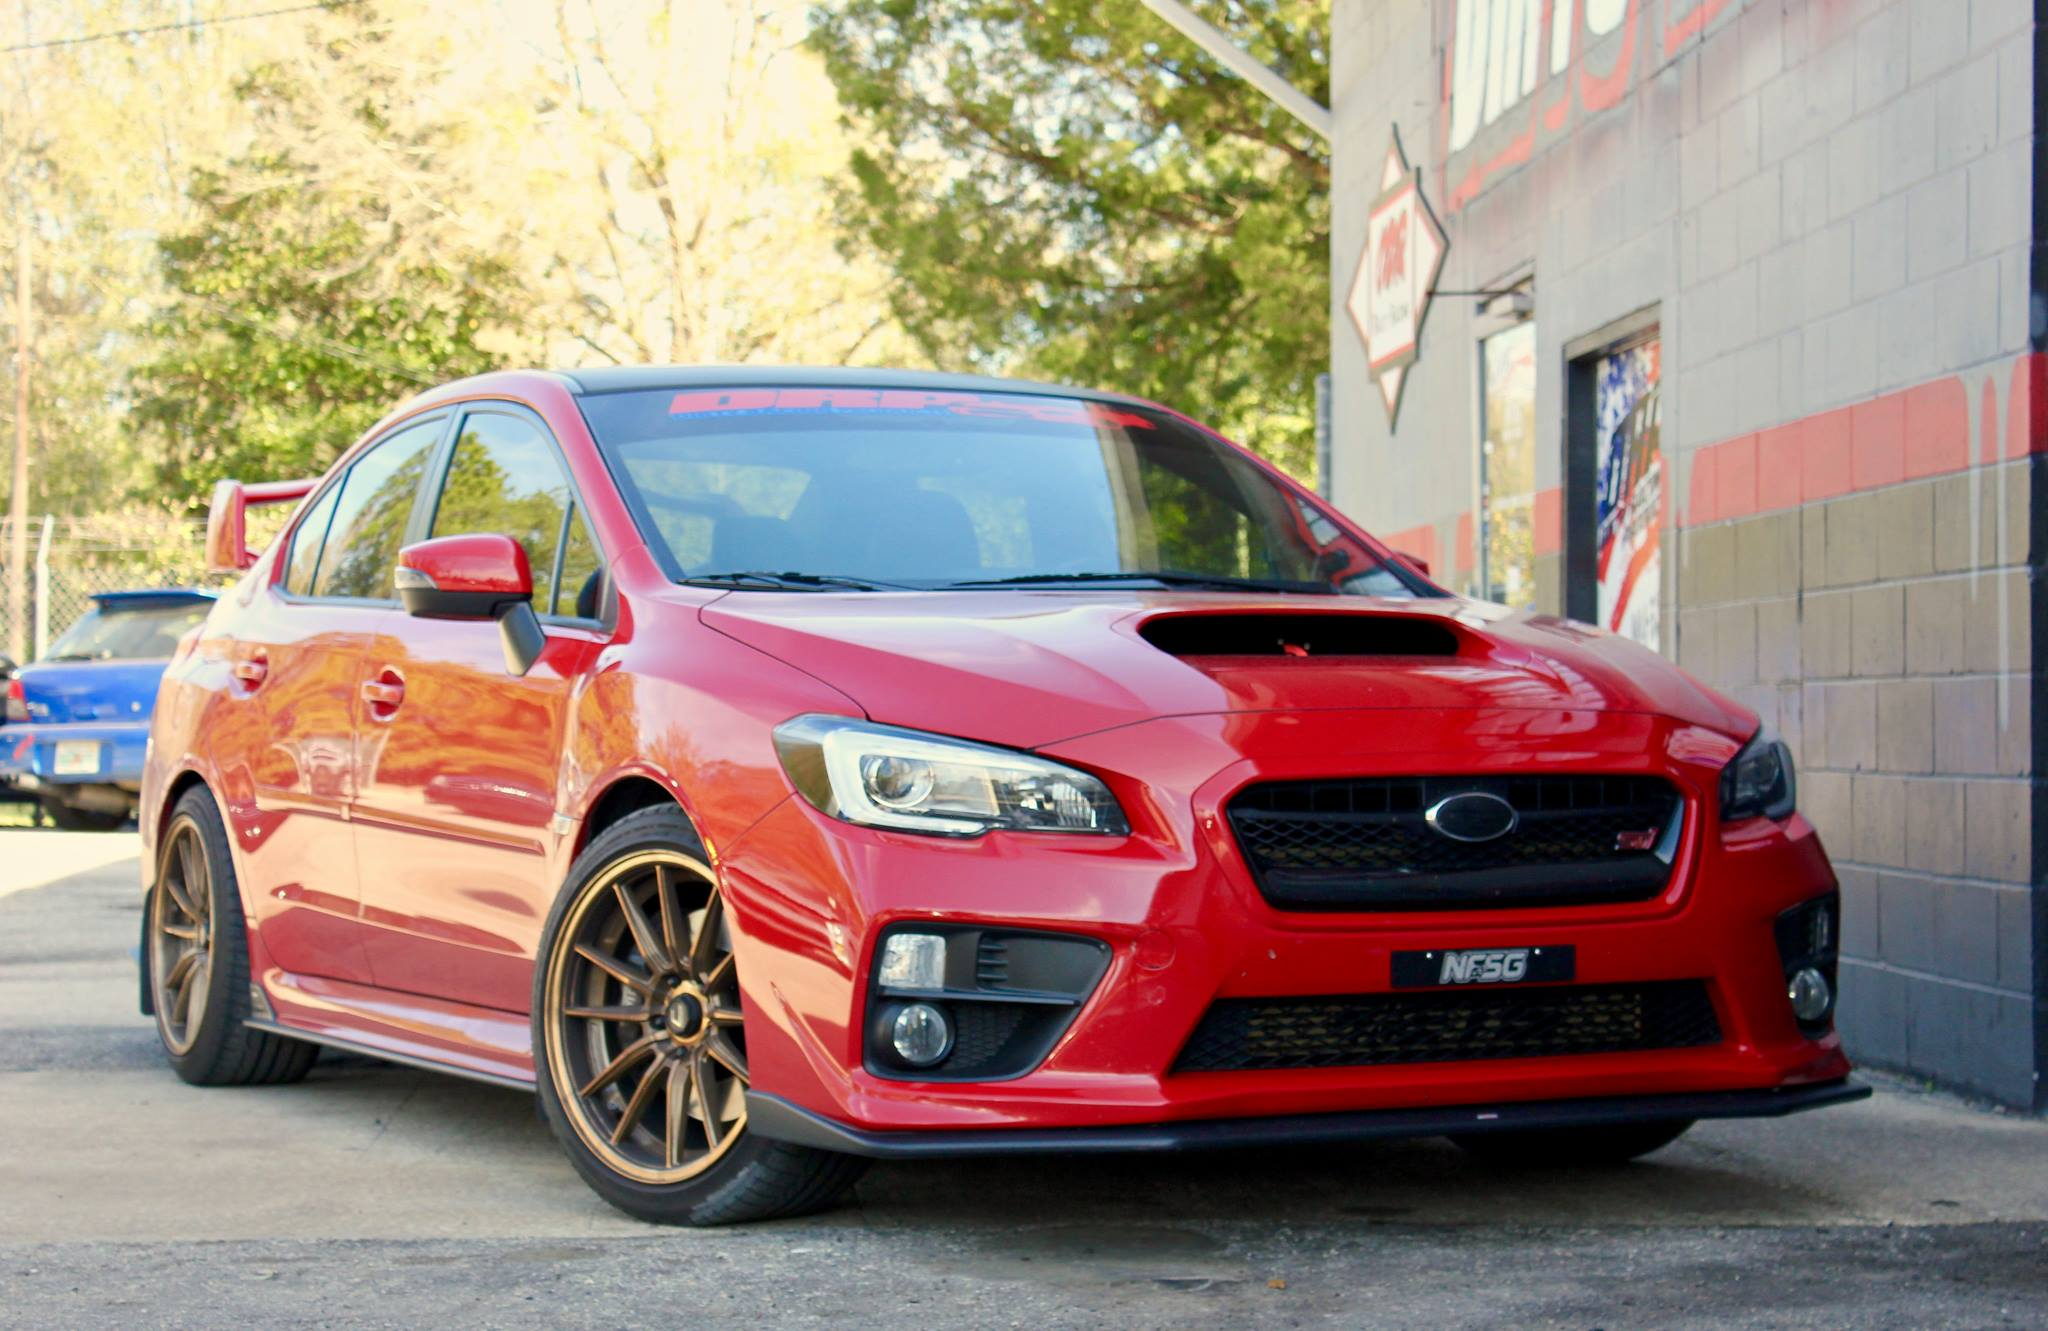 Sold 2015 Limited STI Built Motor Sold-17192627_290485611371212_8250316665870973850_o-jpg